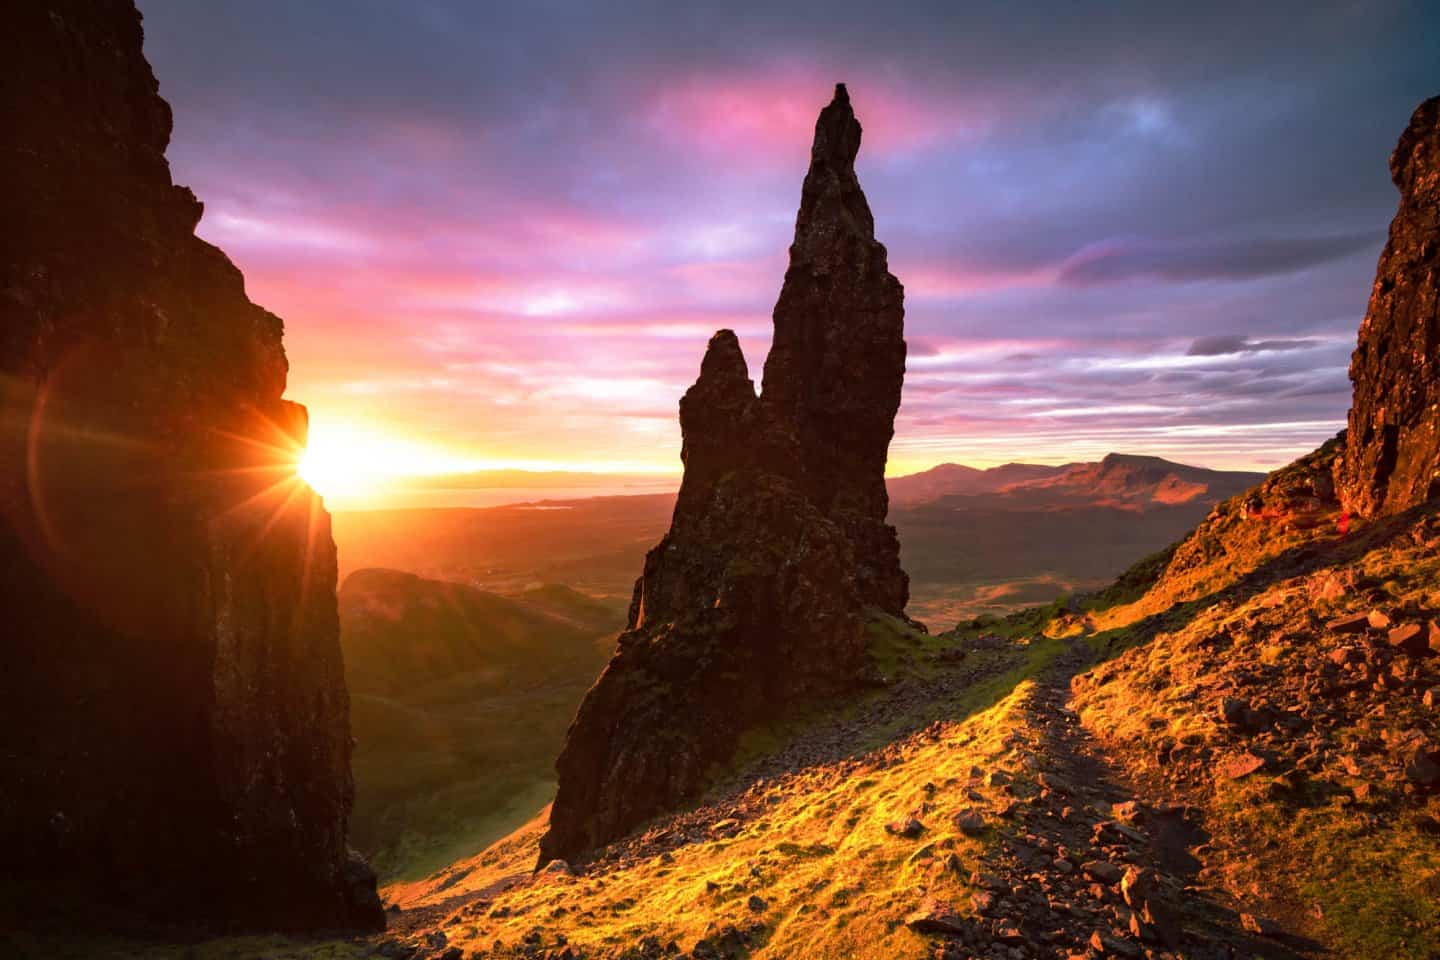 After 10 Days in Scotland, The Needle of Quiraing was the best sunrise scene of all.